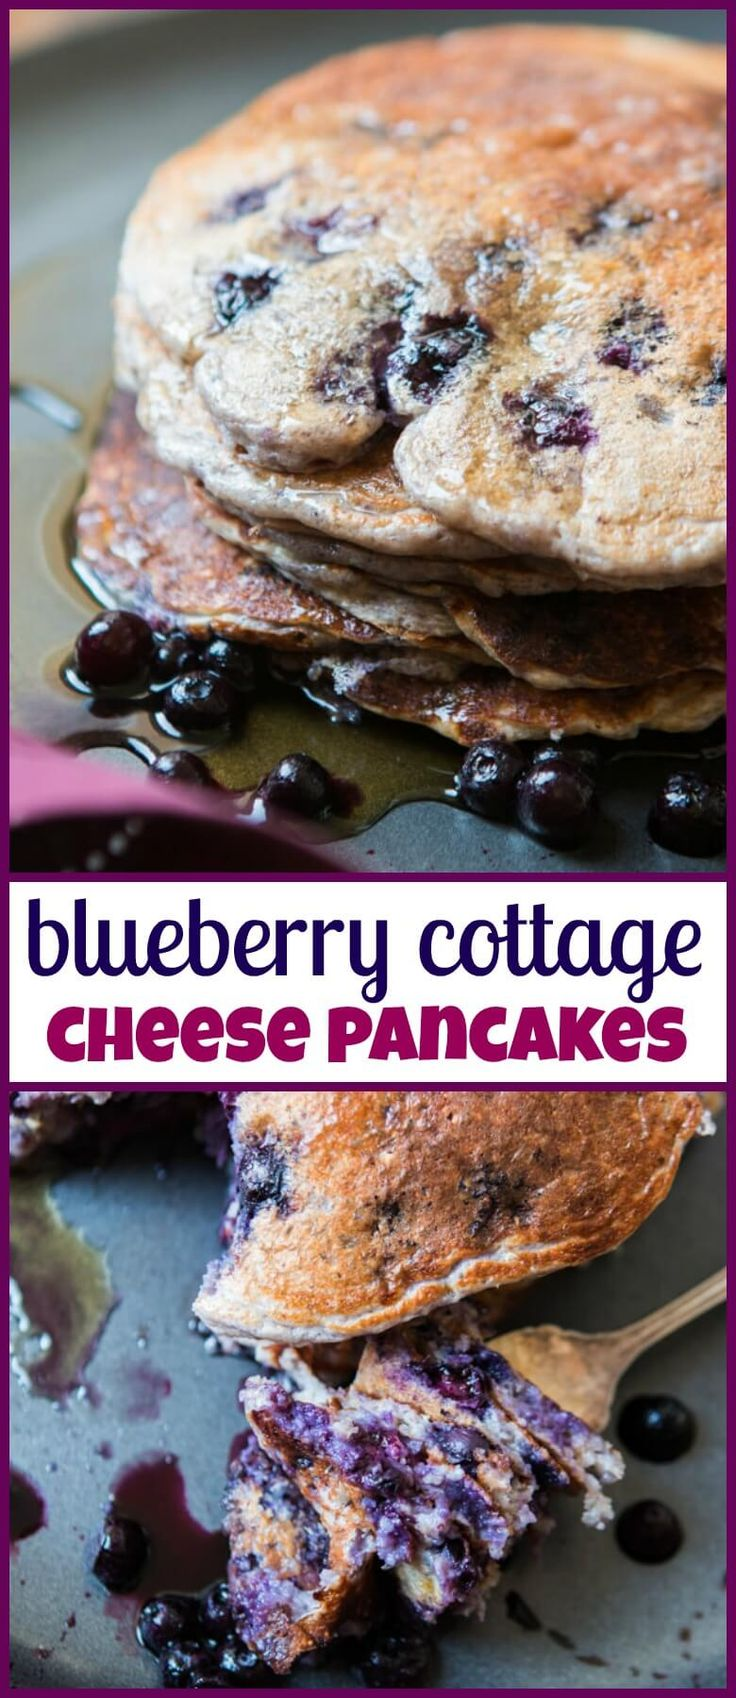 Healthy Wild Blueberry Cottage Cheese Pancakes via @ohsweetbasil